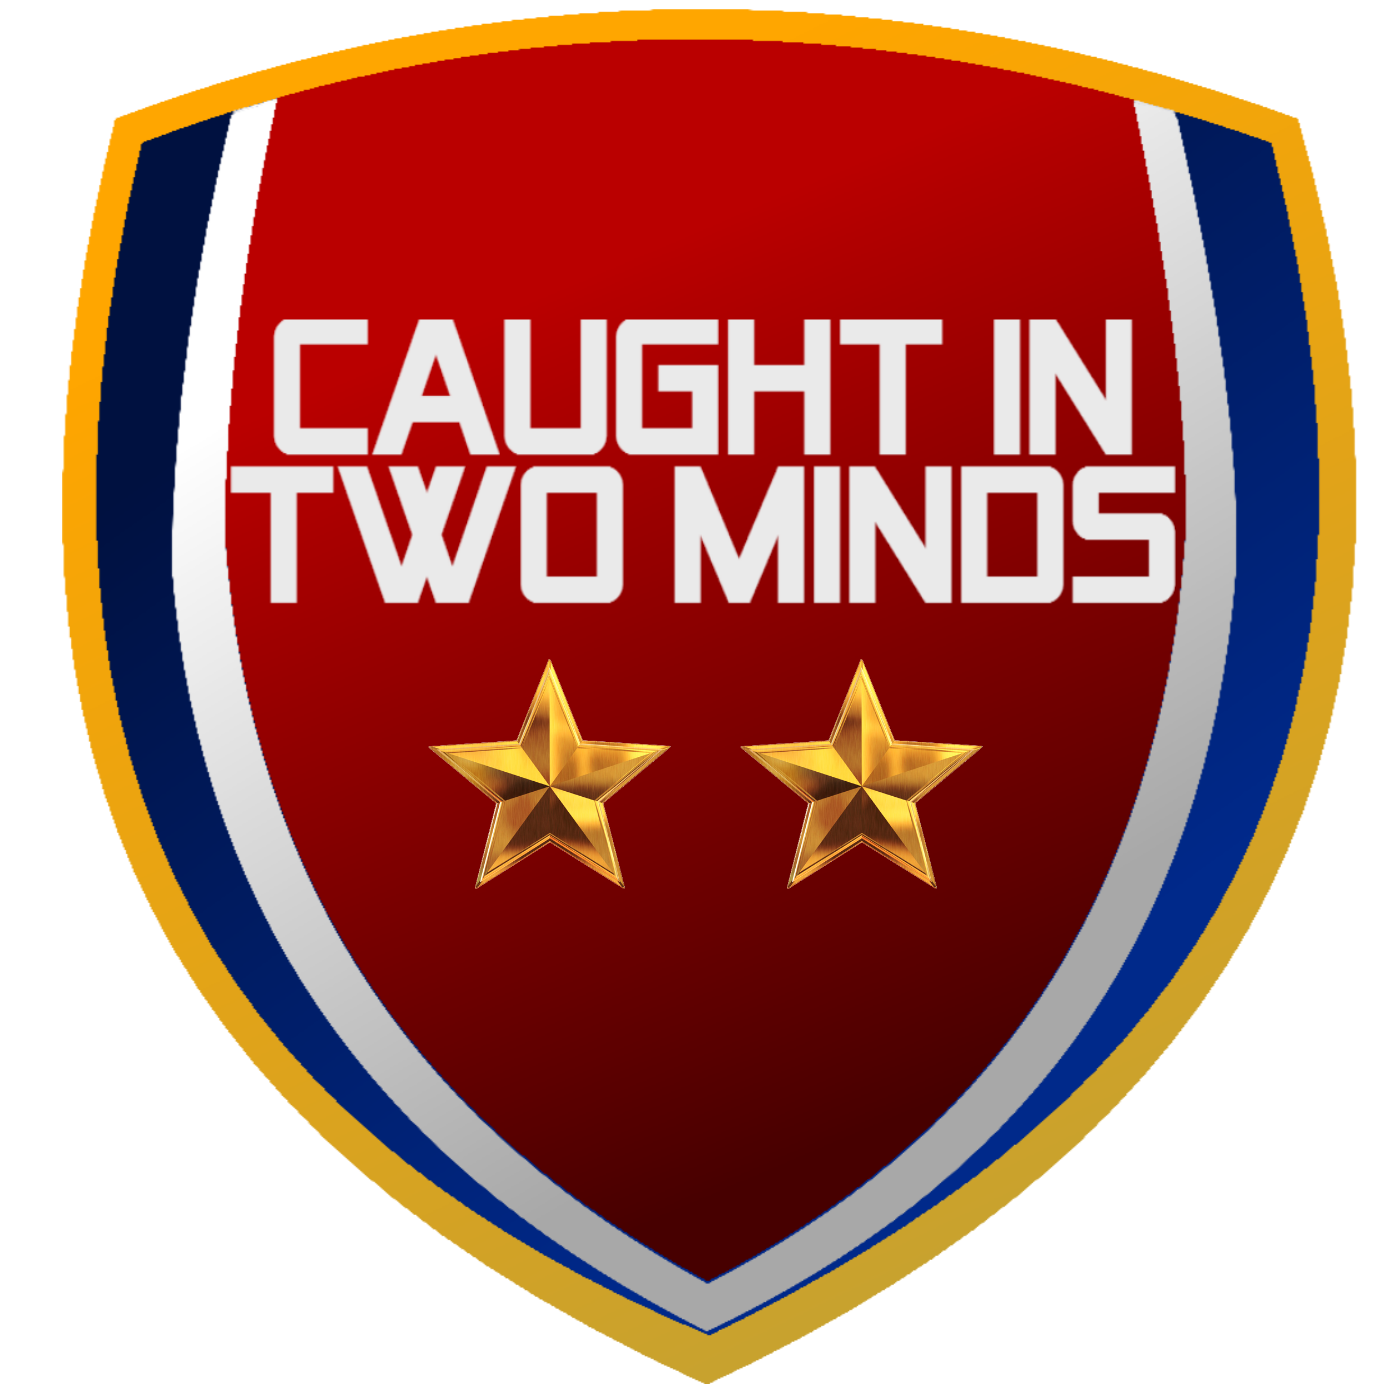 23 - Caught In Two Minds